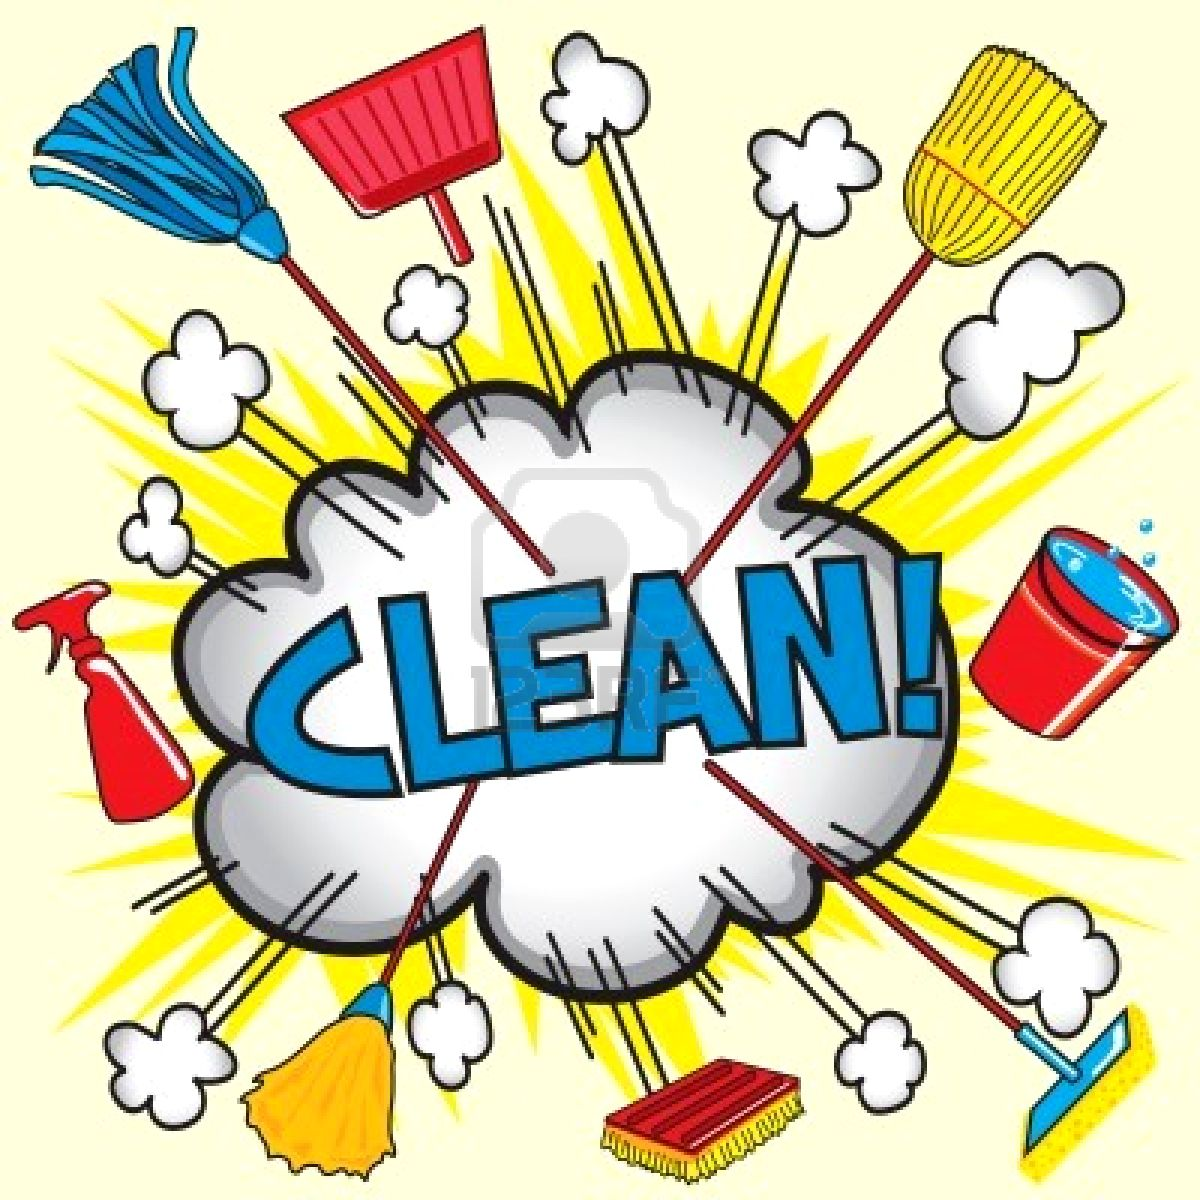 clip art clean up he says we clipart panda free clipart images rh clipartpanda com clean up clipart images clean up toys clipart